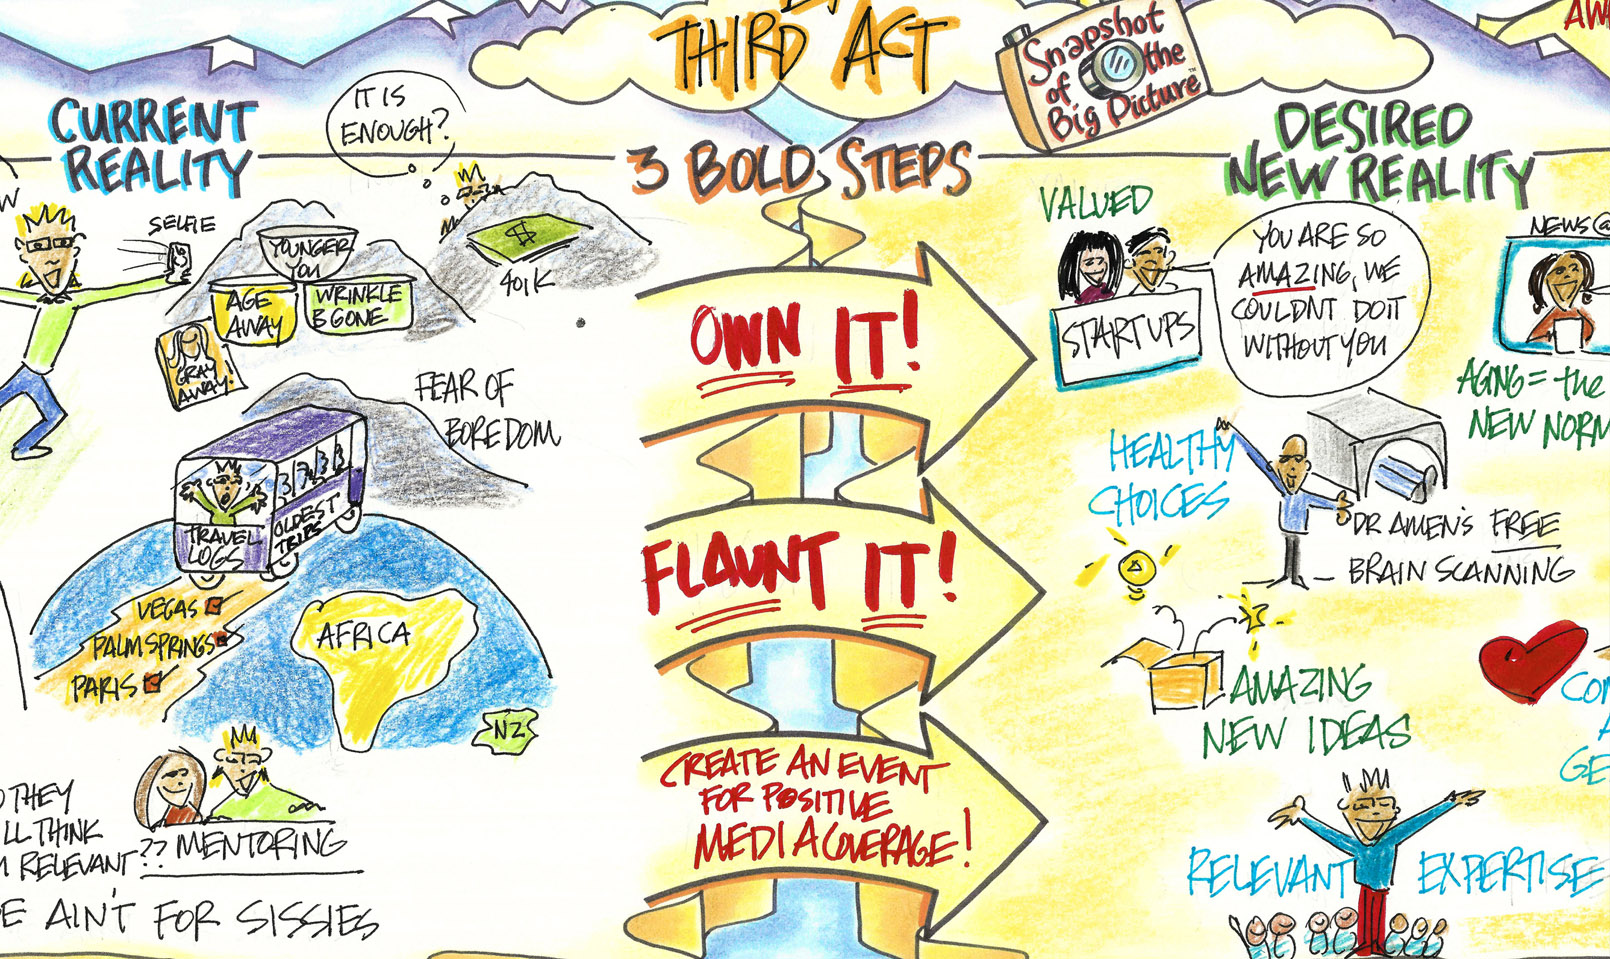 Bold Ideas For A New Future Reimagining Your 3rd Act